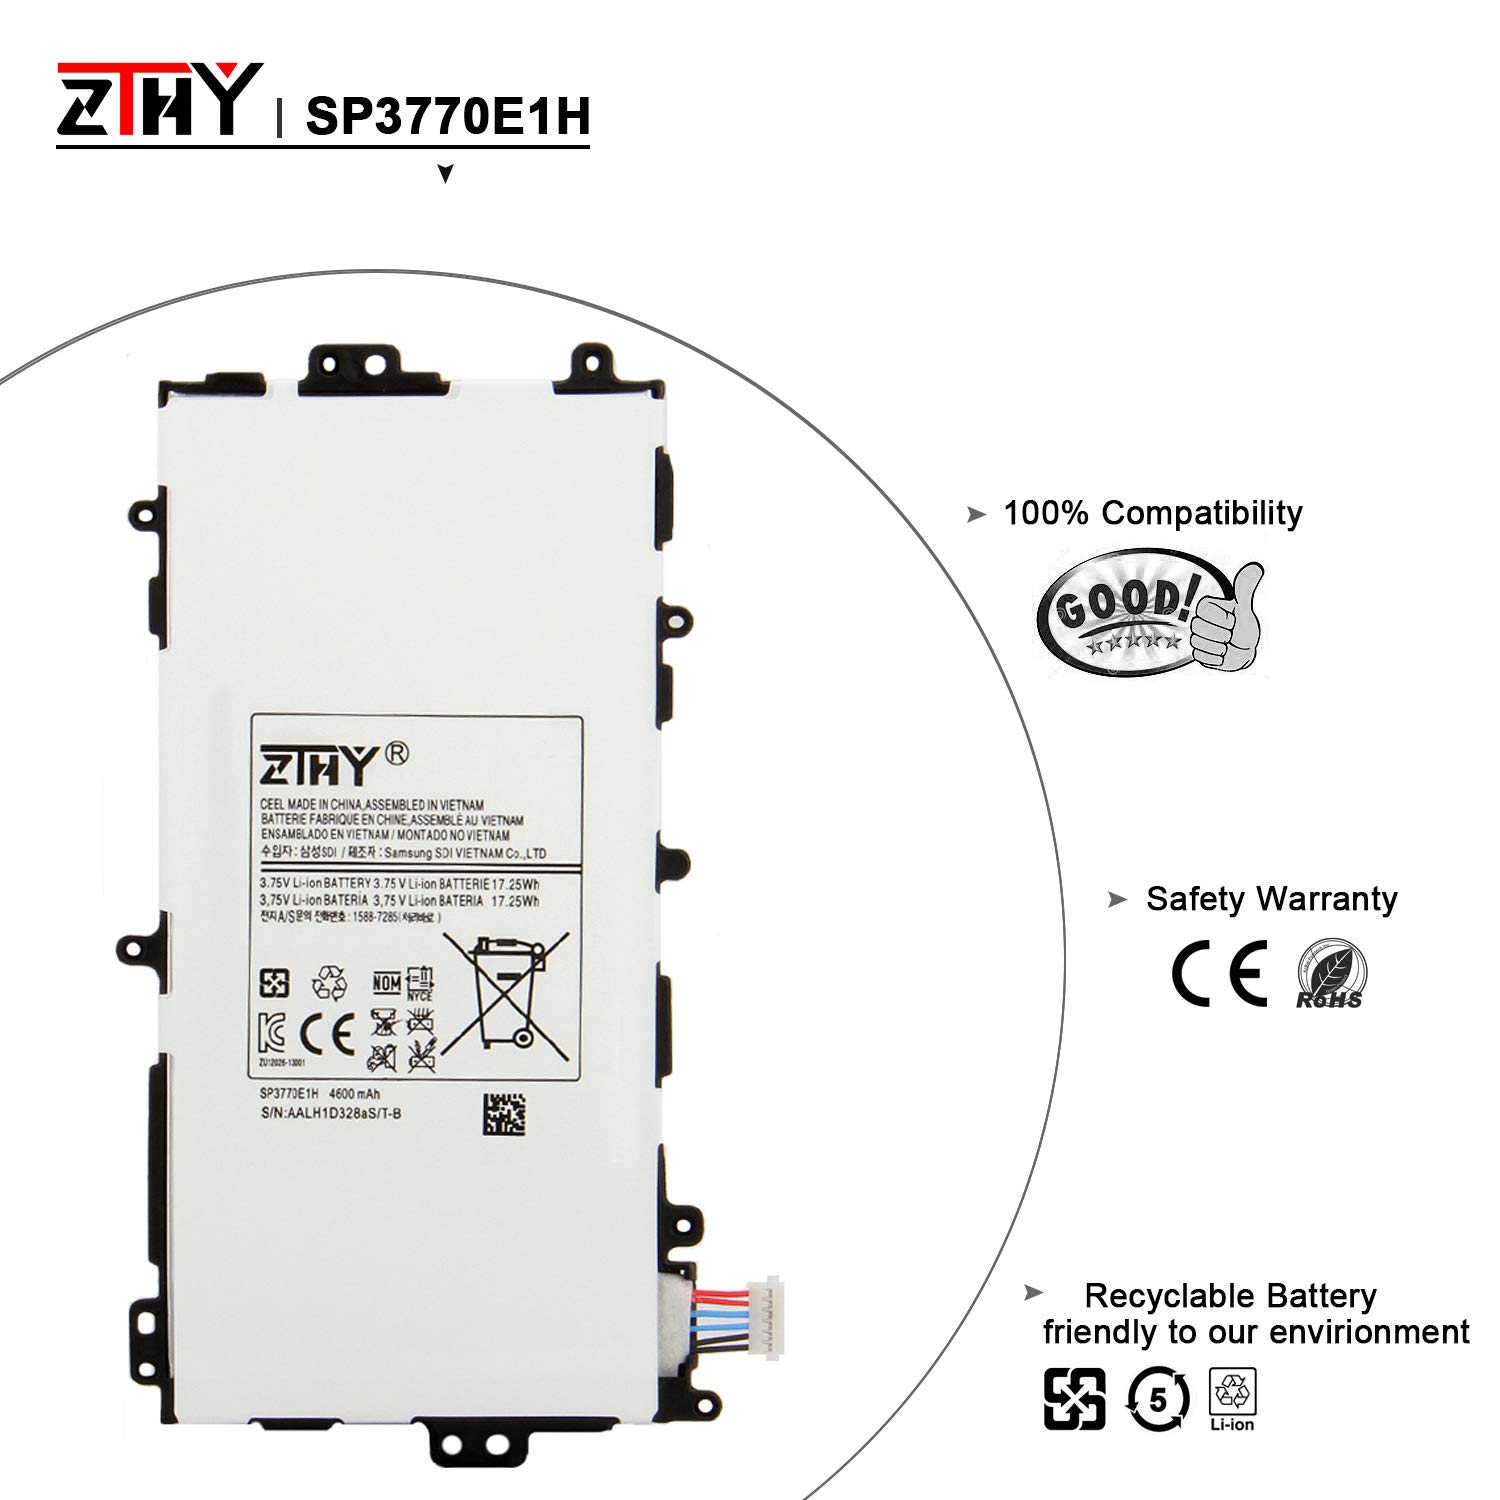 ZTHY Compatible New SP3770E1H Tablet Battery Replacement for Samsung Galaxy Note 8.0 GT-N5110 N5100 N5120 N5110 Series SGH-i467 3.75v 4600mAh With Tools by ZTHY (Image #3)